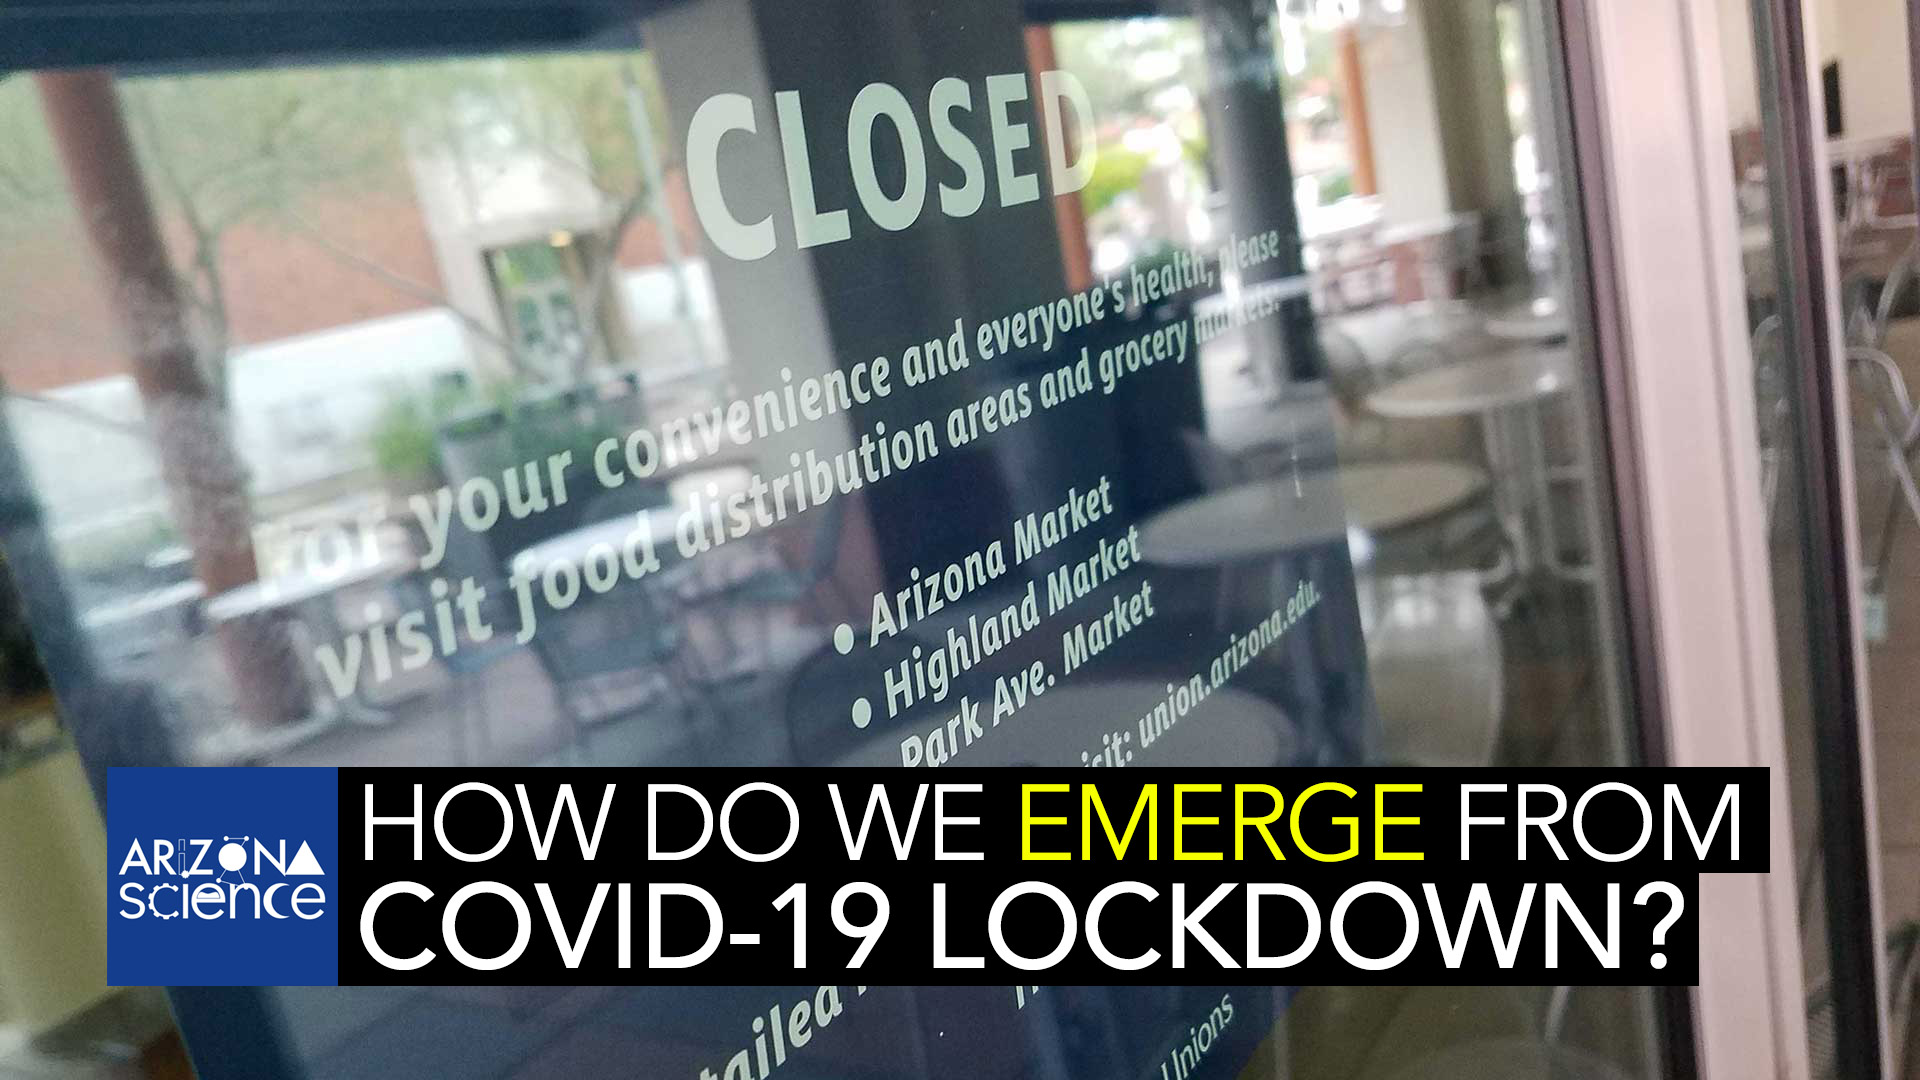 Episode 229: How do we emerge from COVID-19 lockdown?